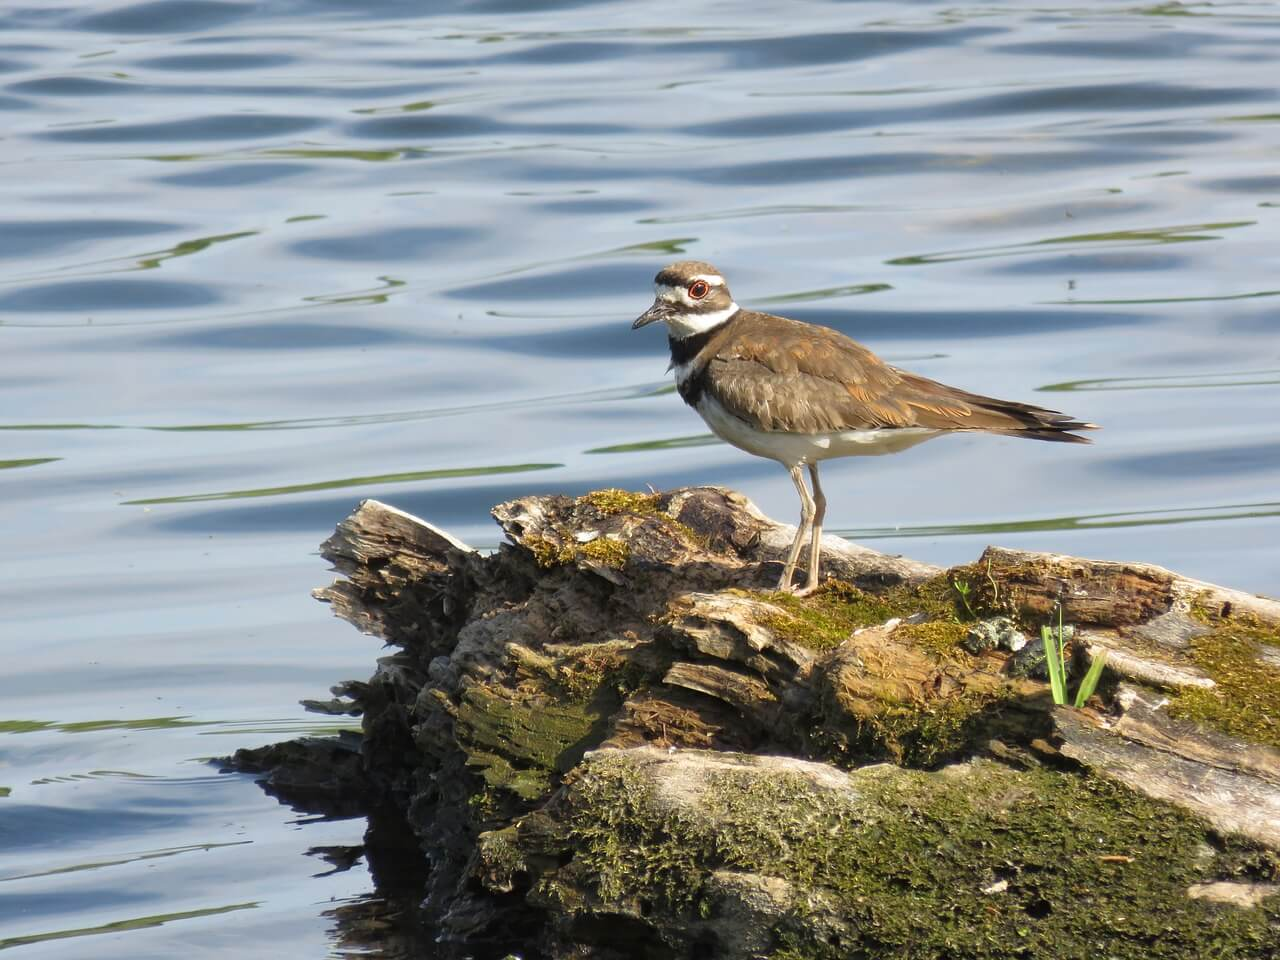 https://pixabay.com/en/killdeer-bird-pond-nature-wildlife-785060/